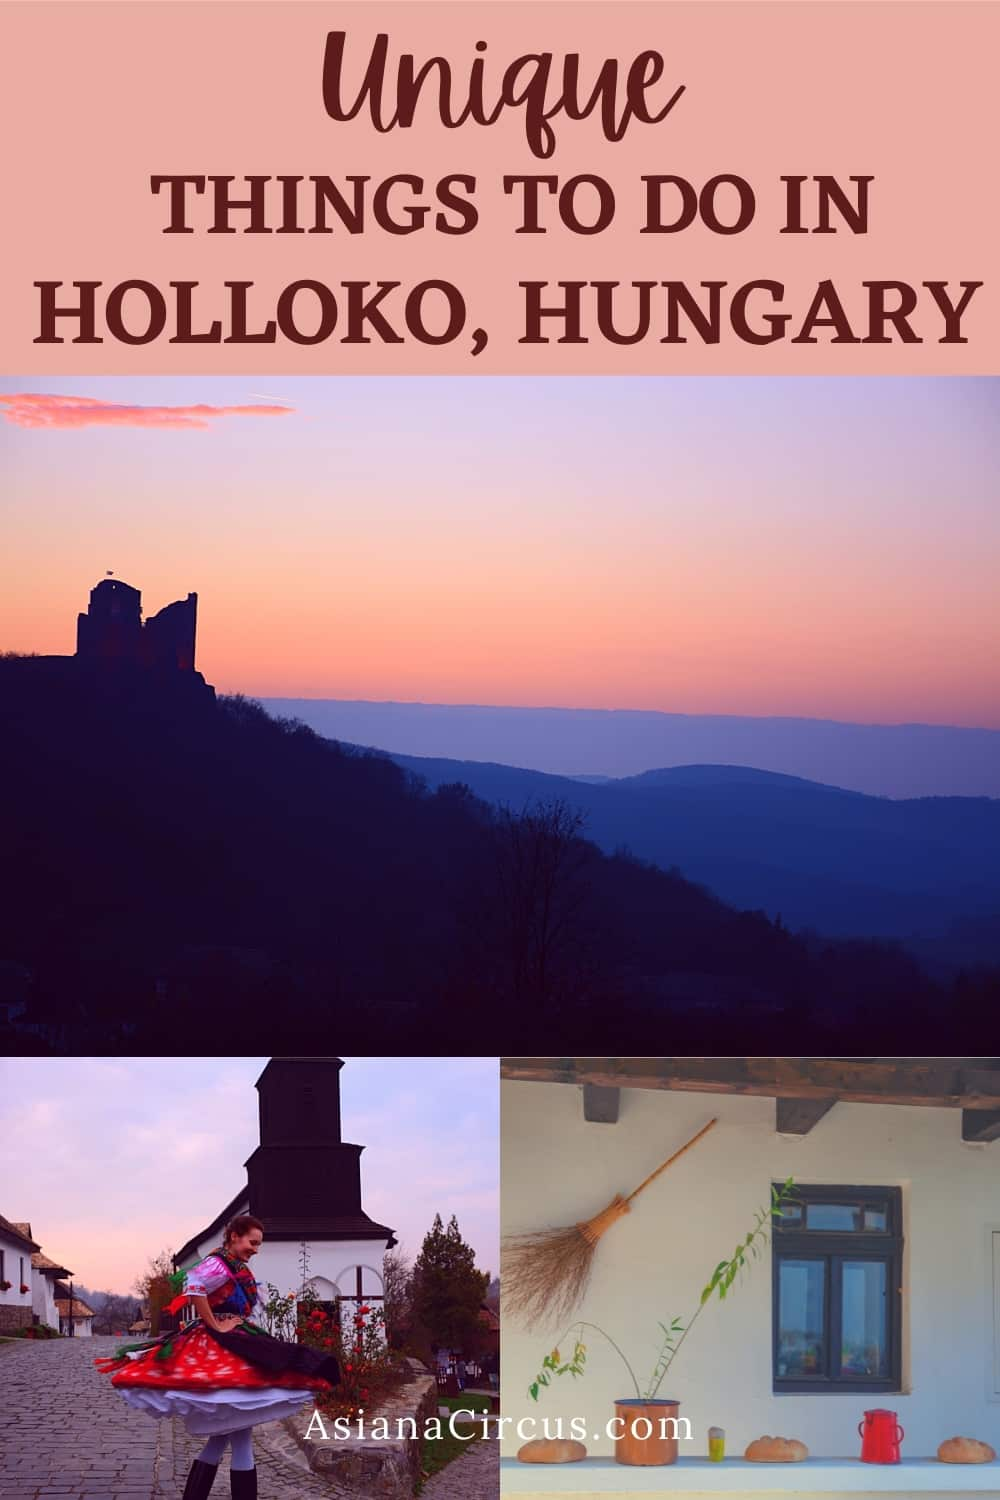 unique things to do in Holloko, hungary